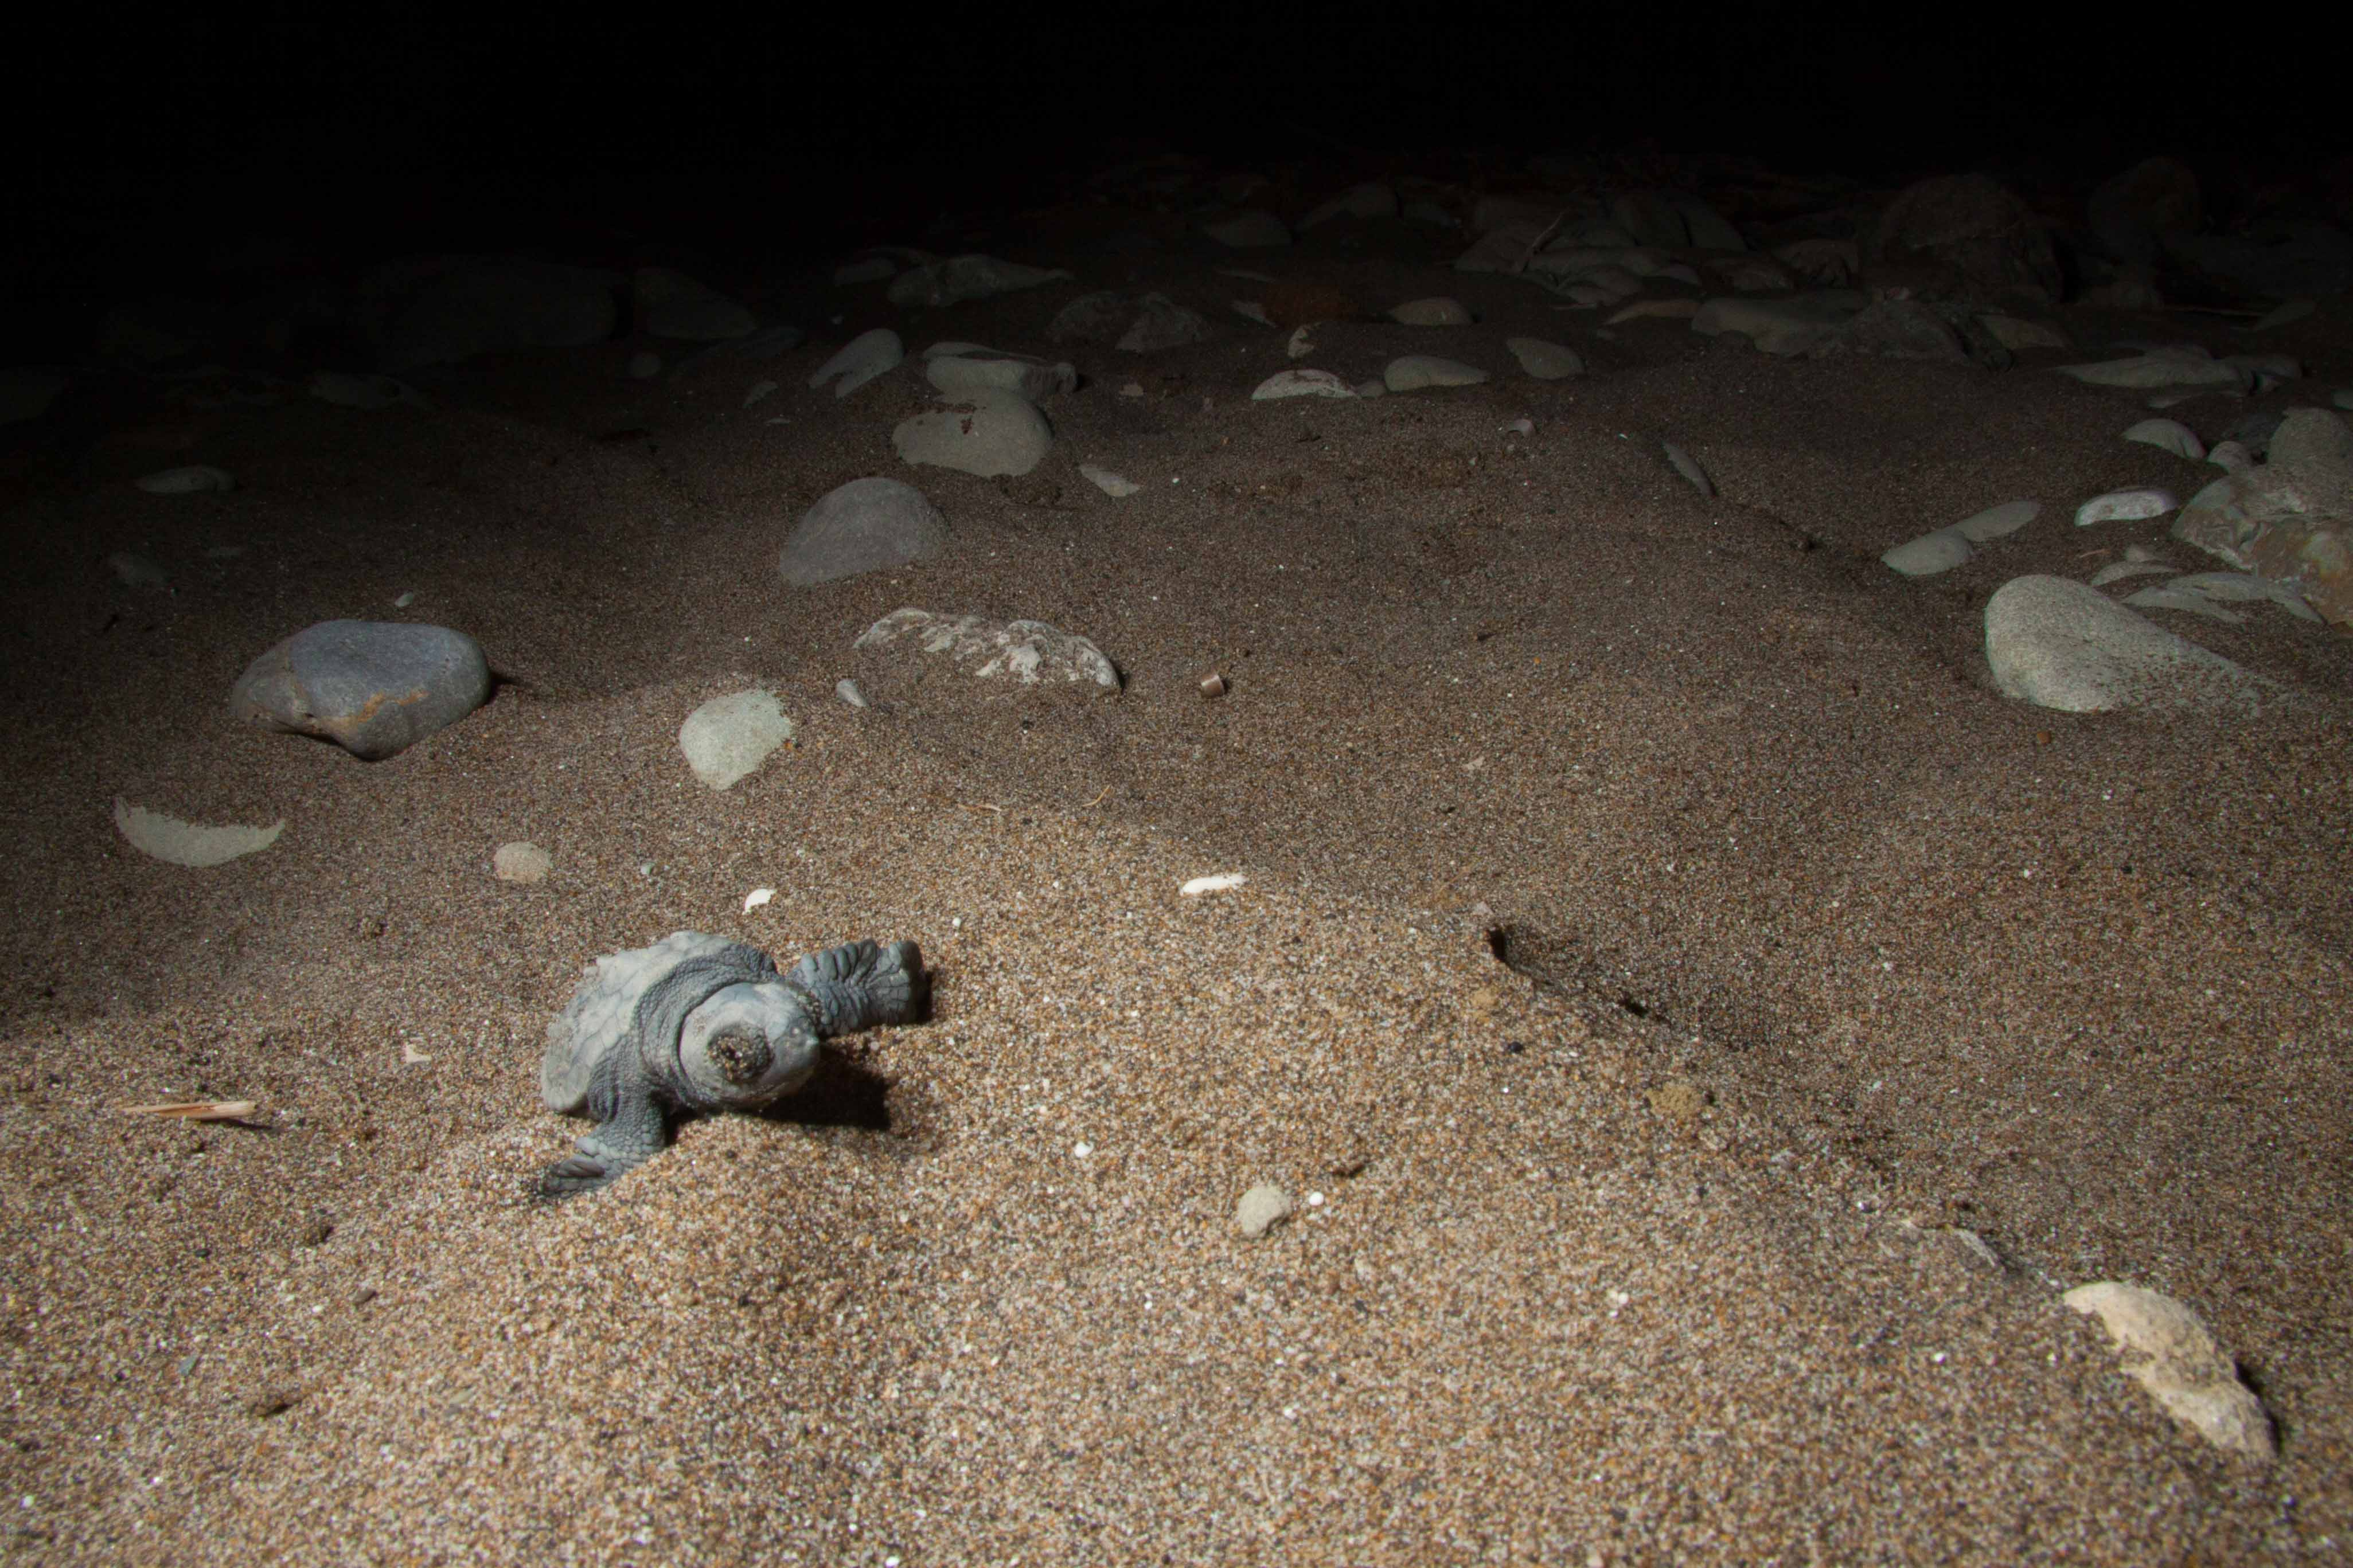 HATCHLING APPROACHING TO WATER